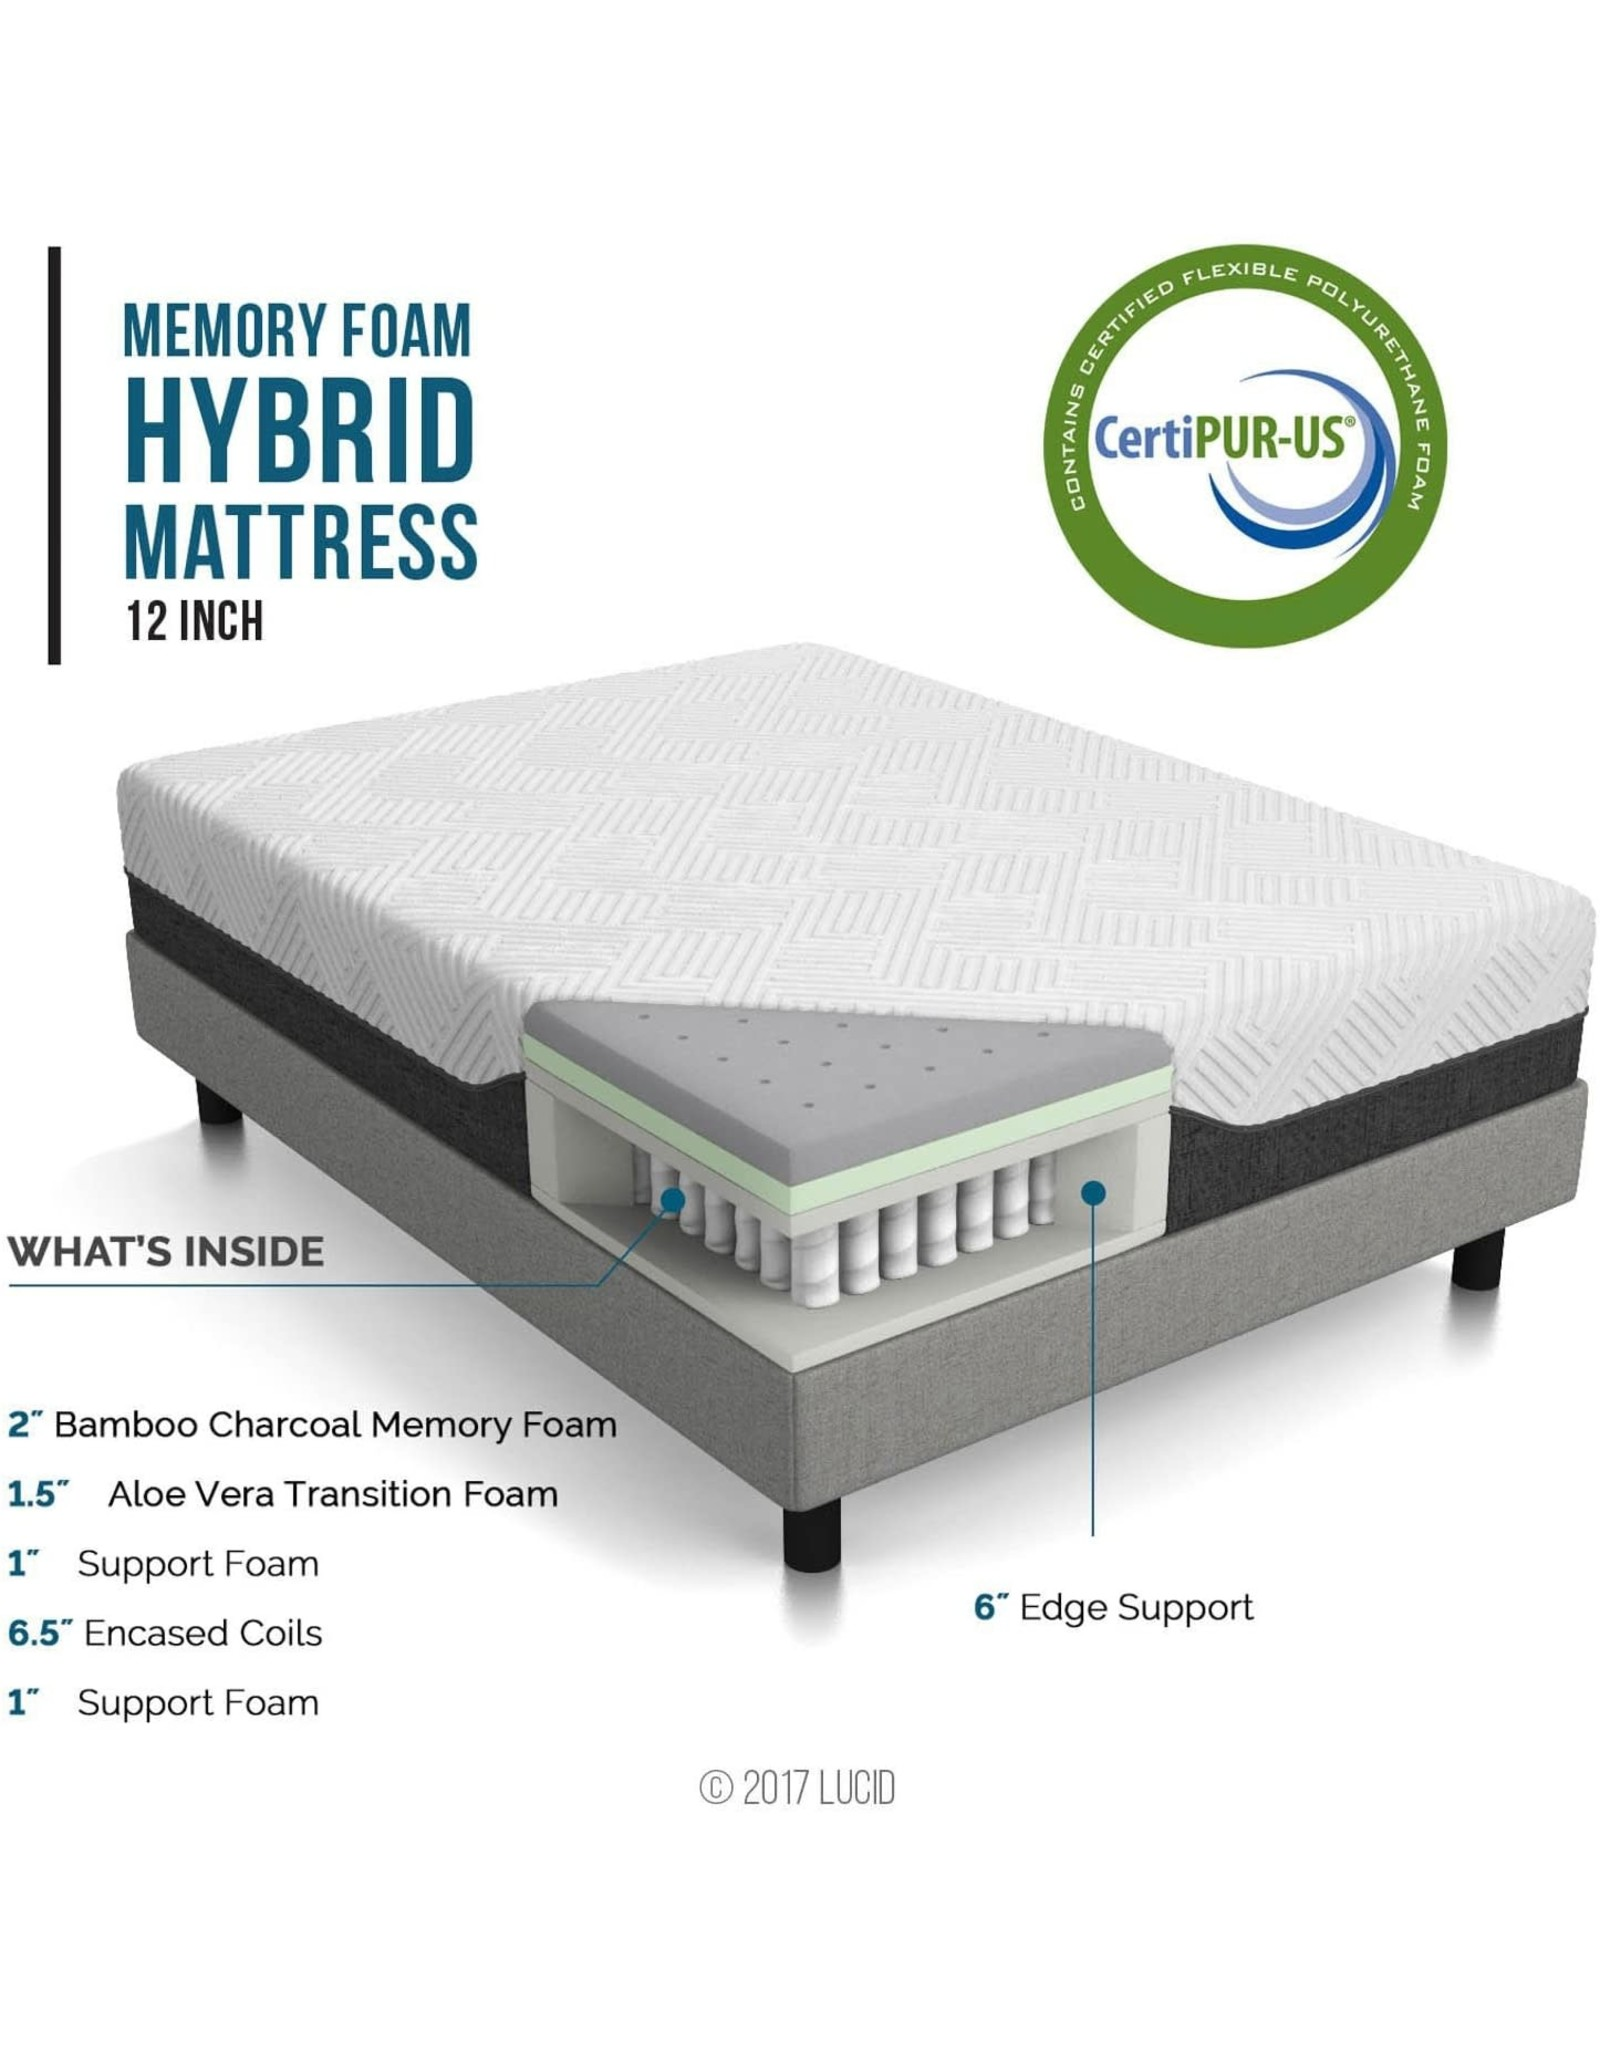 LUCID LUCID 12 Inch Hybrid Mattress - Bamboo Charcoal and Aloe Vera Infused Memory Foam - Motion Isolating Springs, Queen